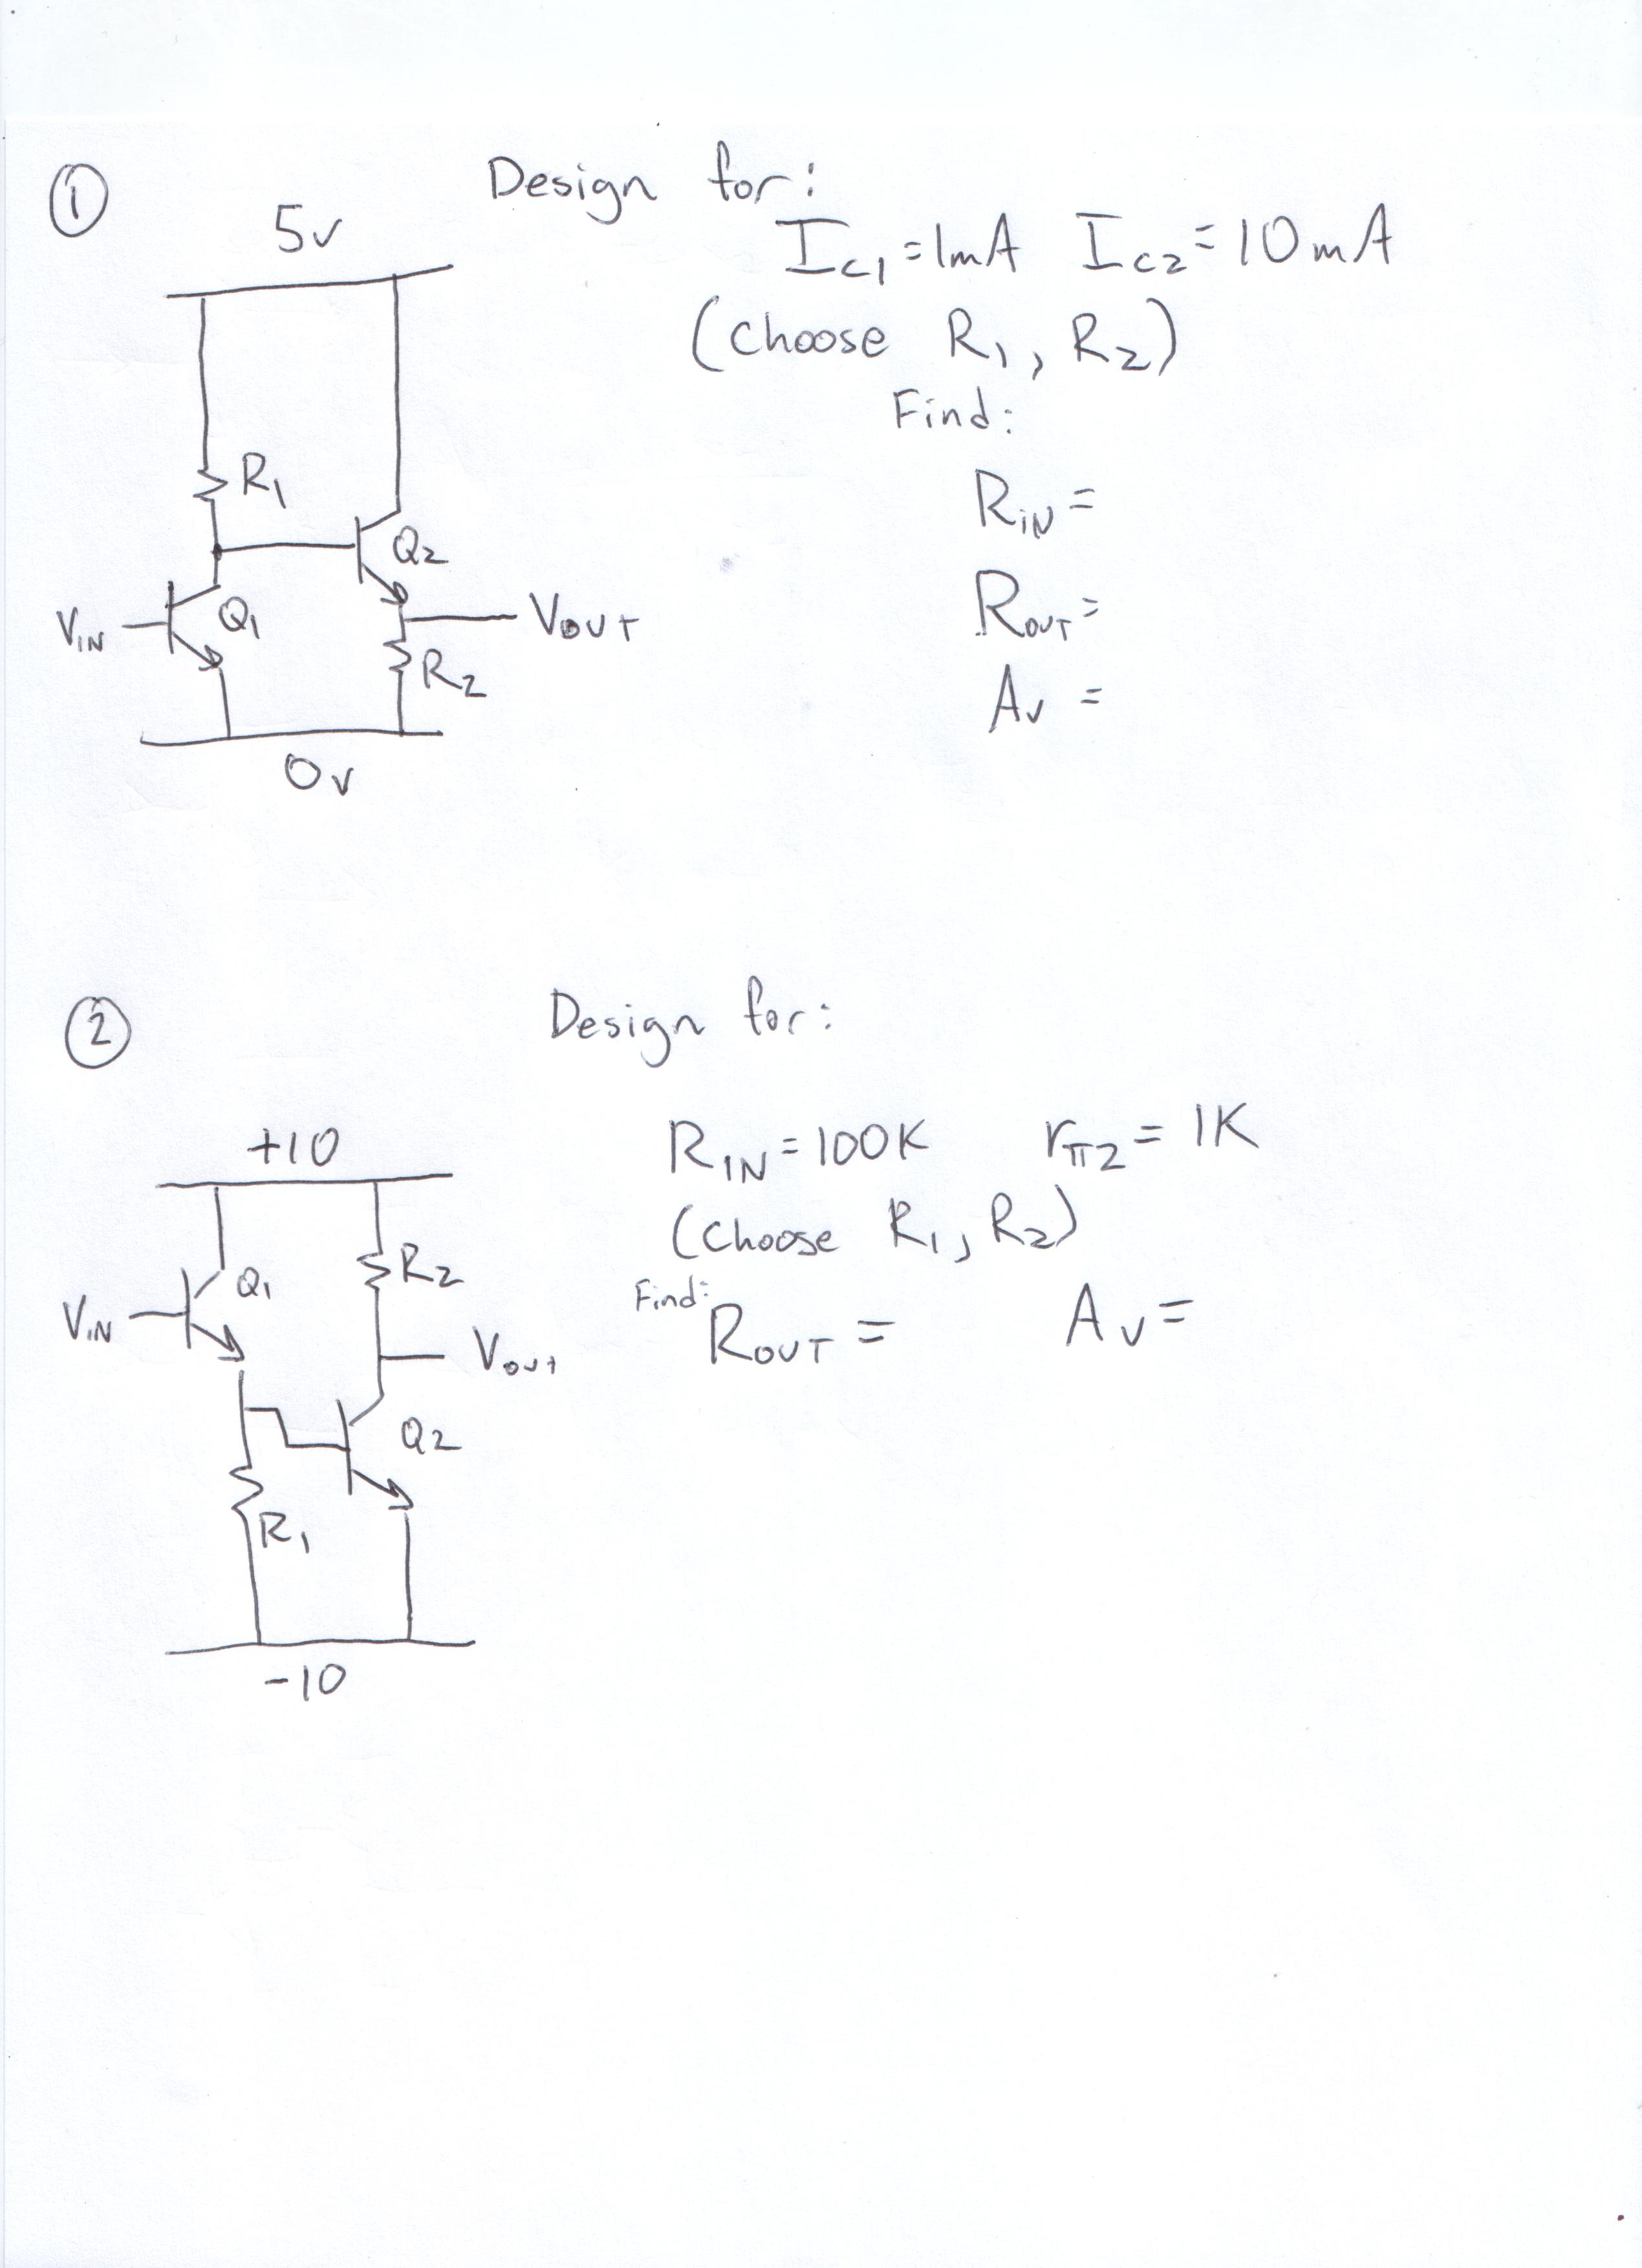 Ee332 Op Amp Summer Circuit Homework 1 Note I Want Data Points Dont Need A Formula For This